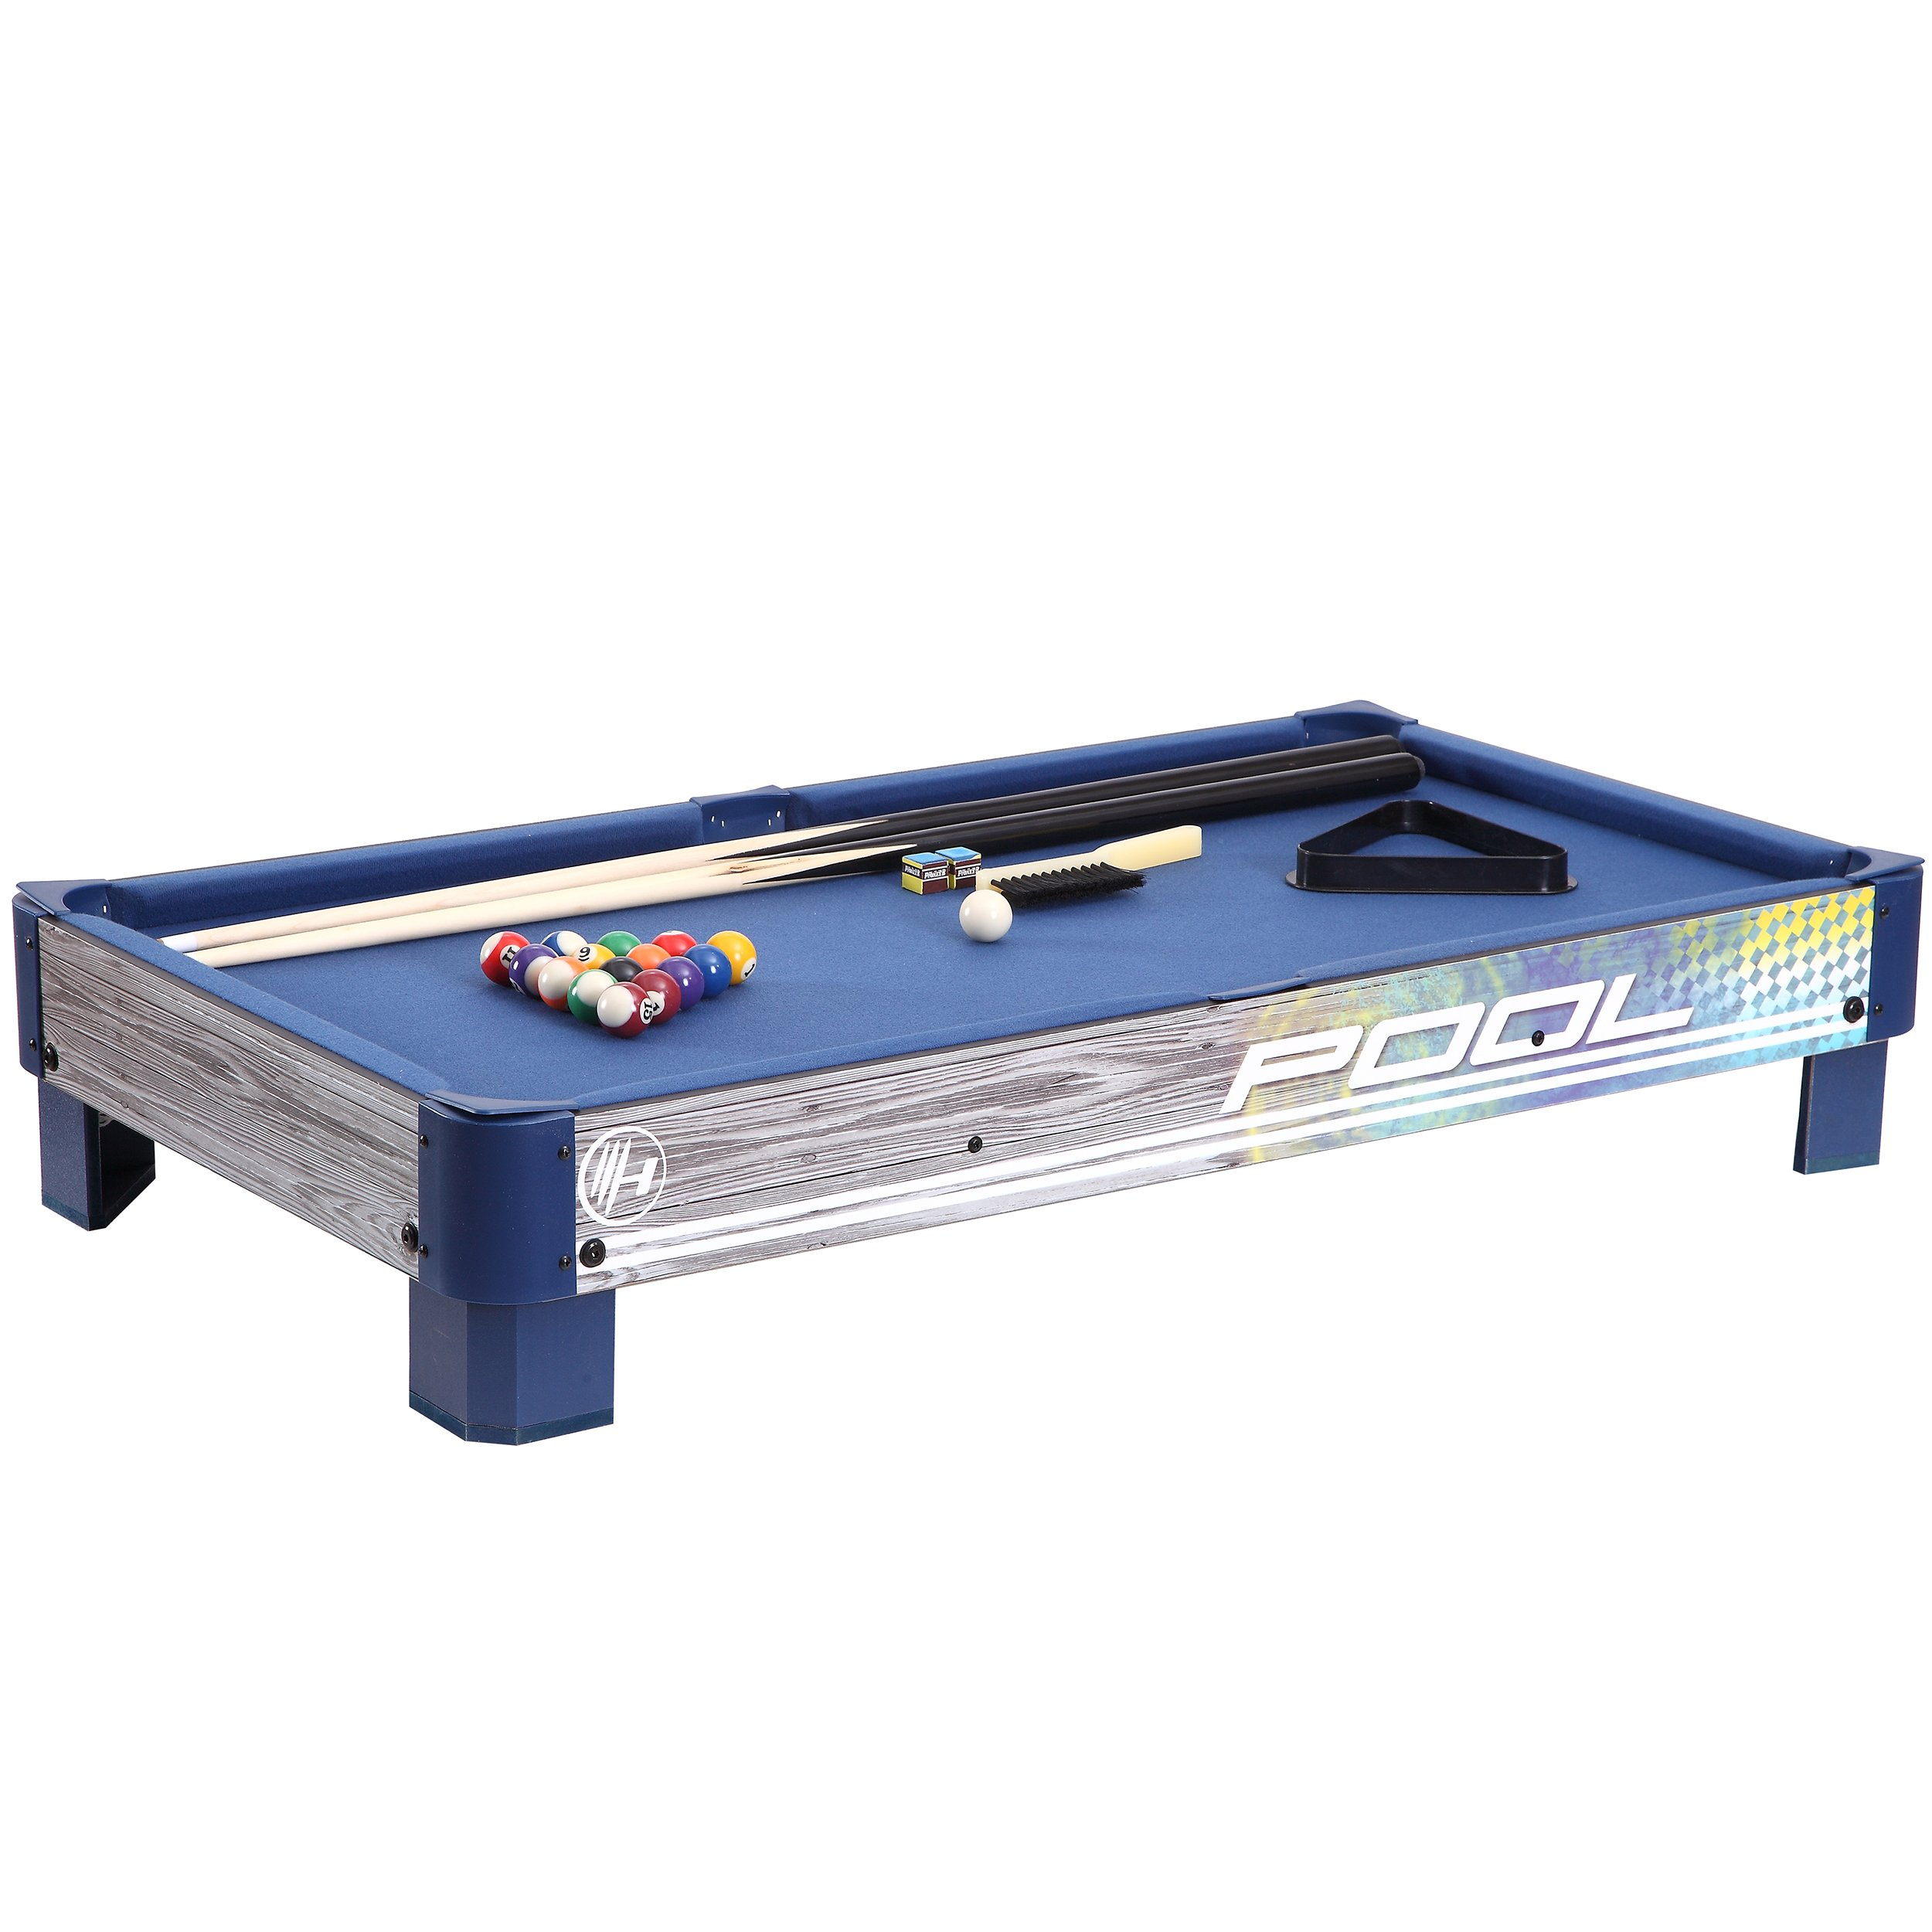 Harvil Tabletop Pool Table with L-style Legs. Includes 2-Pieces 36-Inch Pool Cues, 1 Set of Billiard Balls, Chalk and Triangle